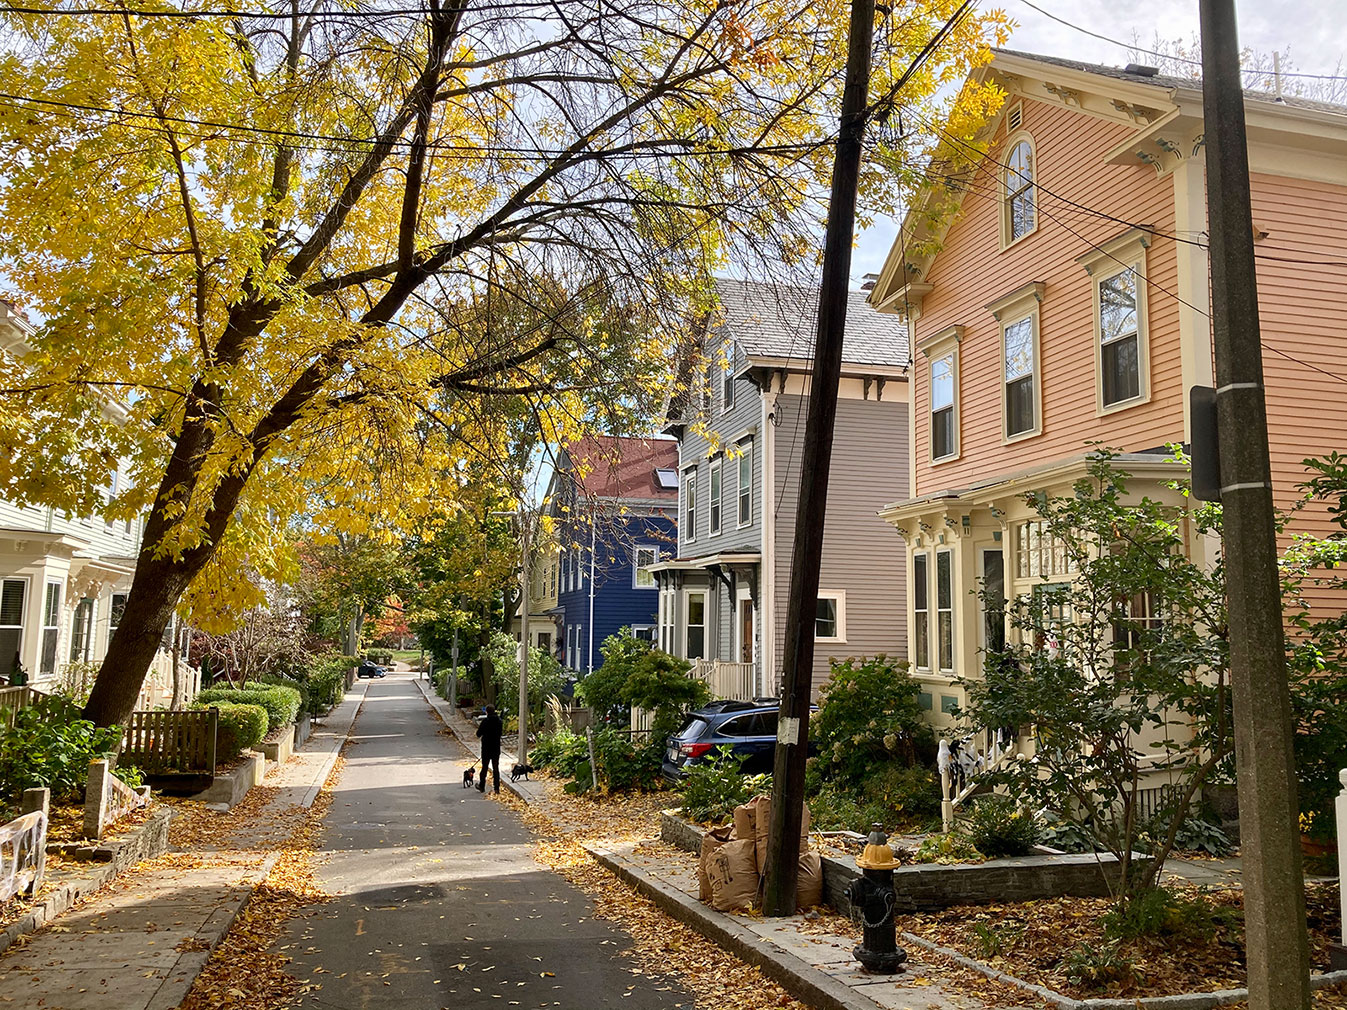 A street shot capturing the colourful houses of Jamaica Plain